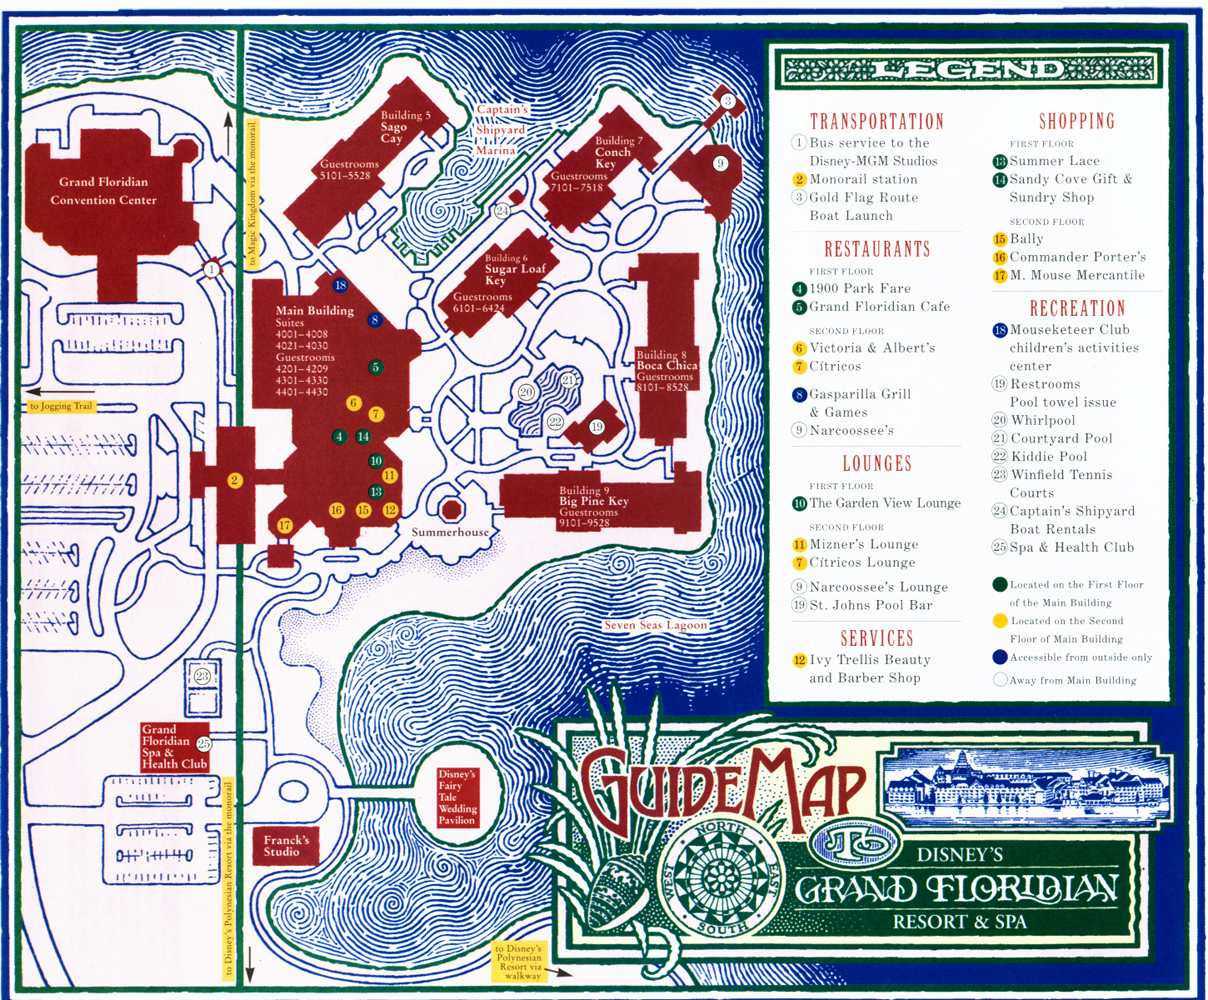 grand californian hotel map with Walt Disney World Maps For Theme Parks Resorts Transportation Downtown Disney And Water Parks on Mapa De Disneyland California Conoce Sus Zonas Tematicas also Maps furthermore Orlando Hotels Disneys Wilderness Lodge h871865 moreover Parc Disneyland Paris also Railroad.